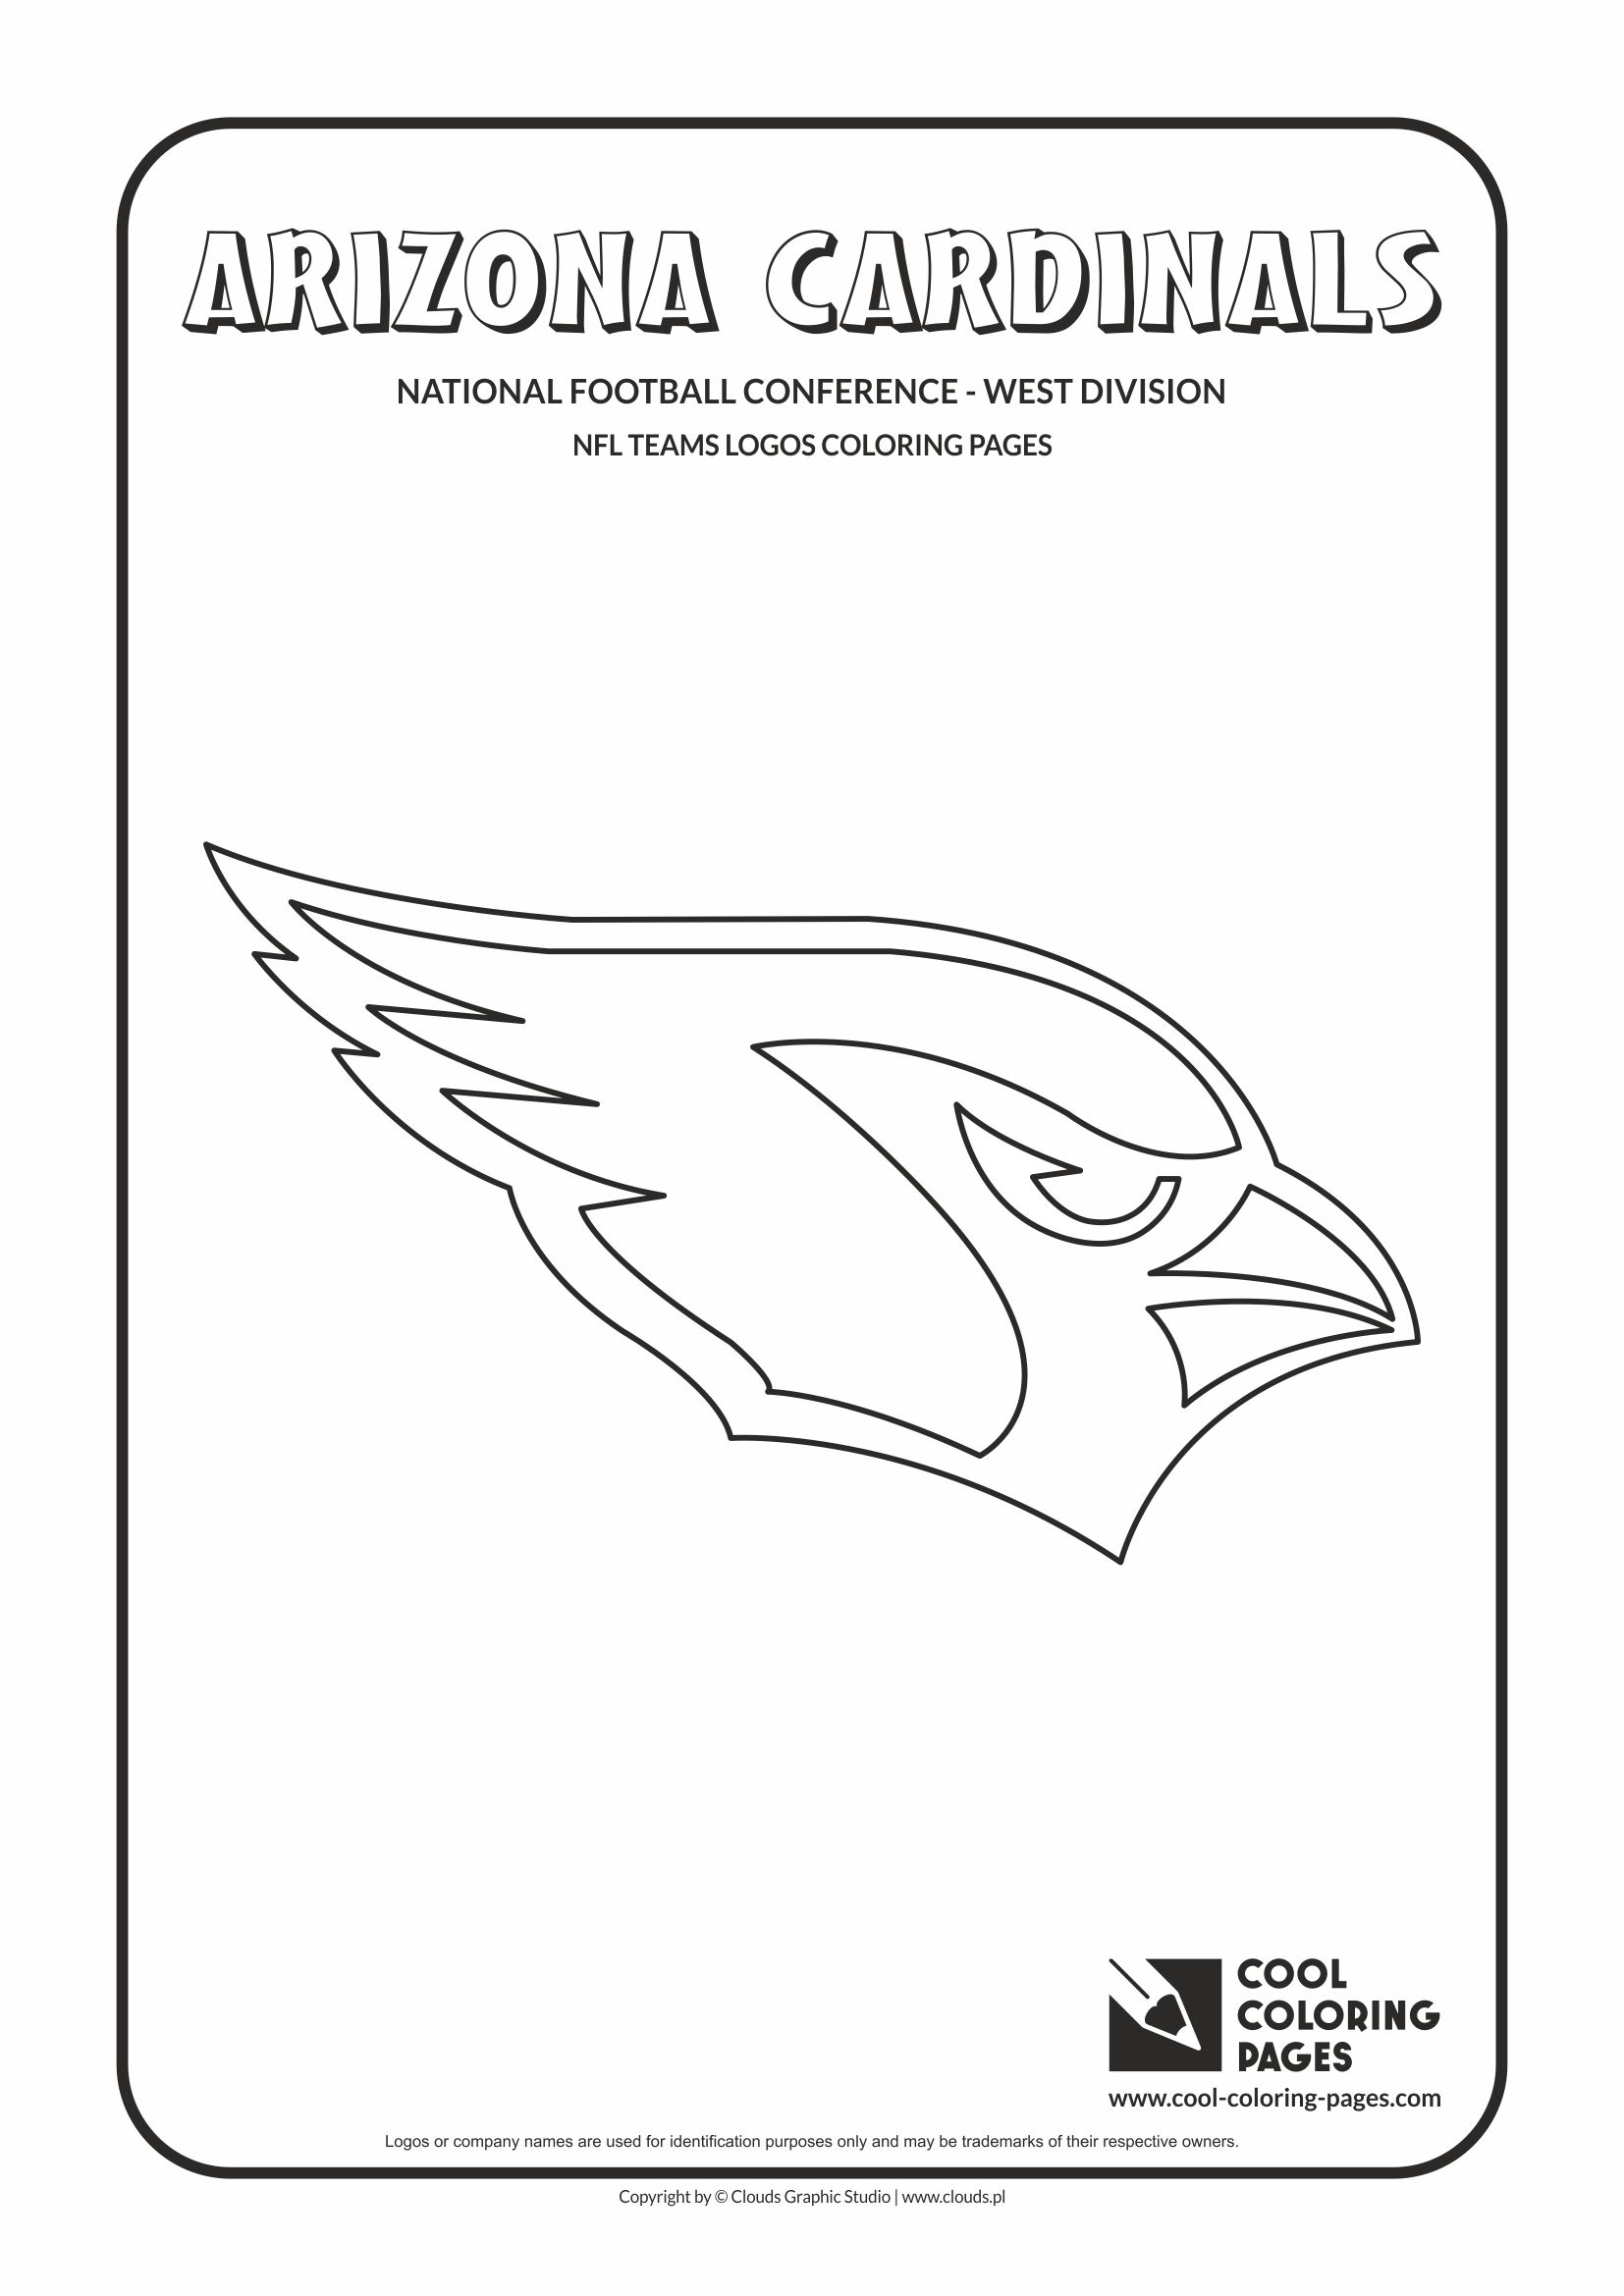 Cool Coloring Pages - NFL American Football Clubs Logos - National Football Conference - West Division / Arizona Cardinals logo / Coloring page with Arizona Cardinals logo